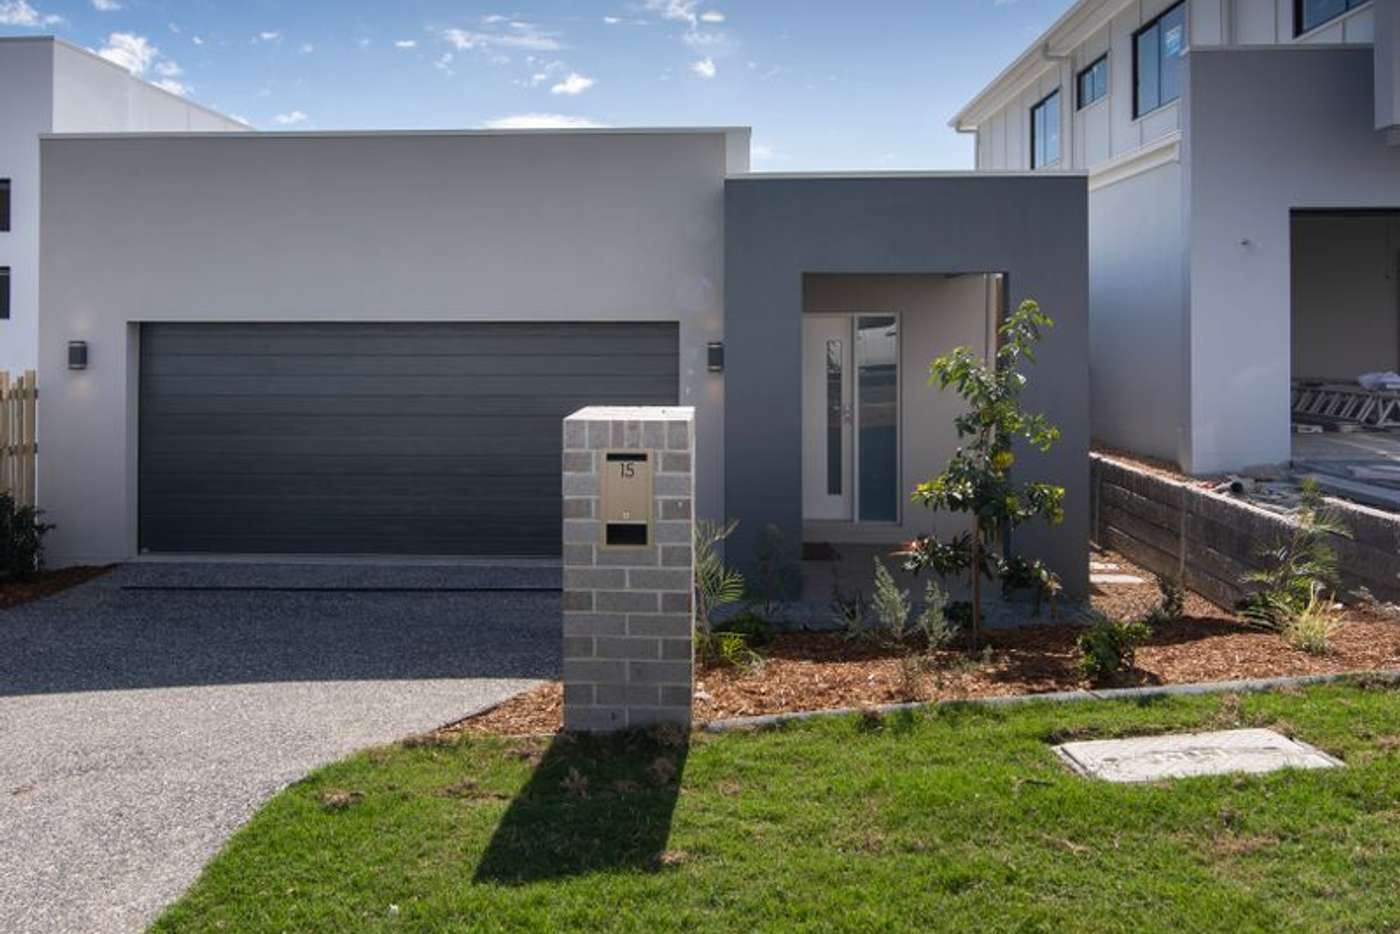 Main view of Homely house listing, 15 Carissa Street, Coomera QLD 4209